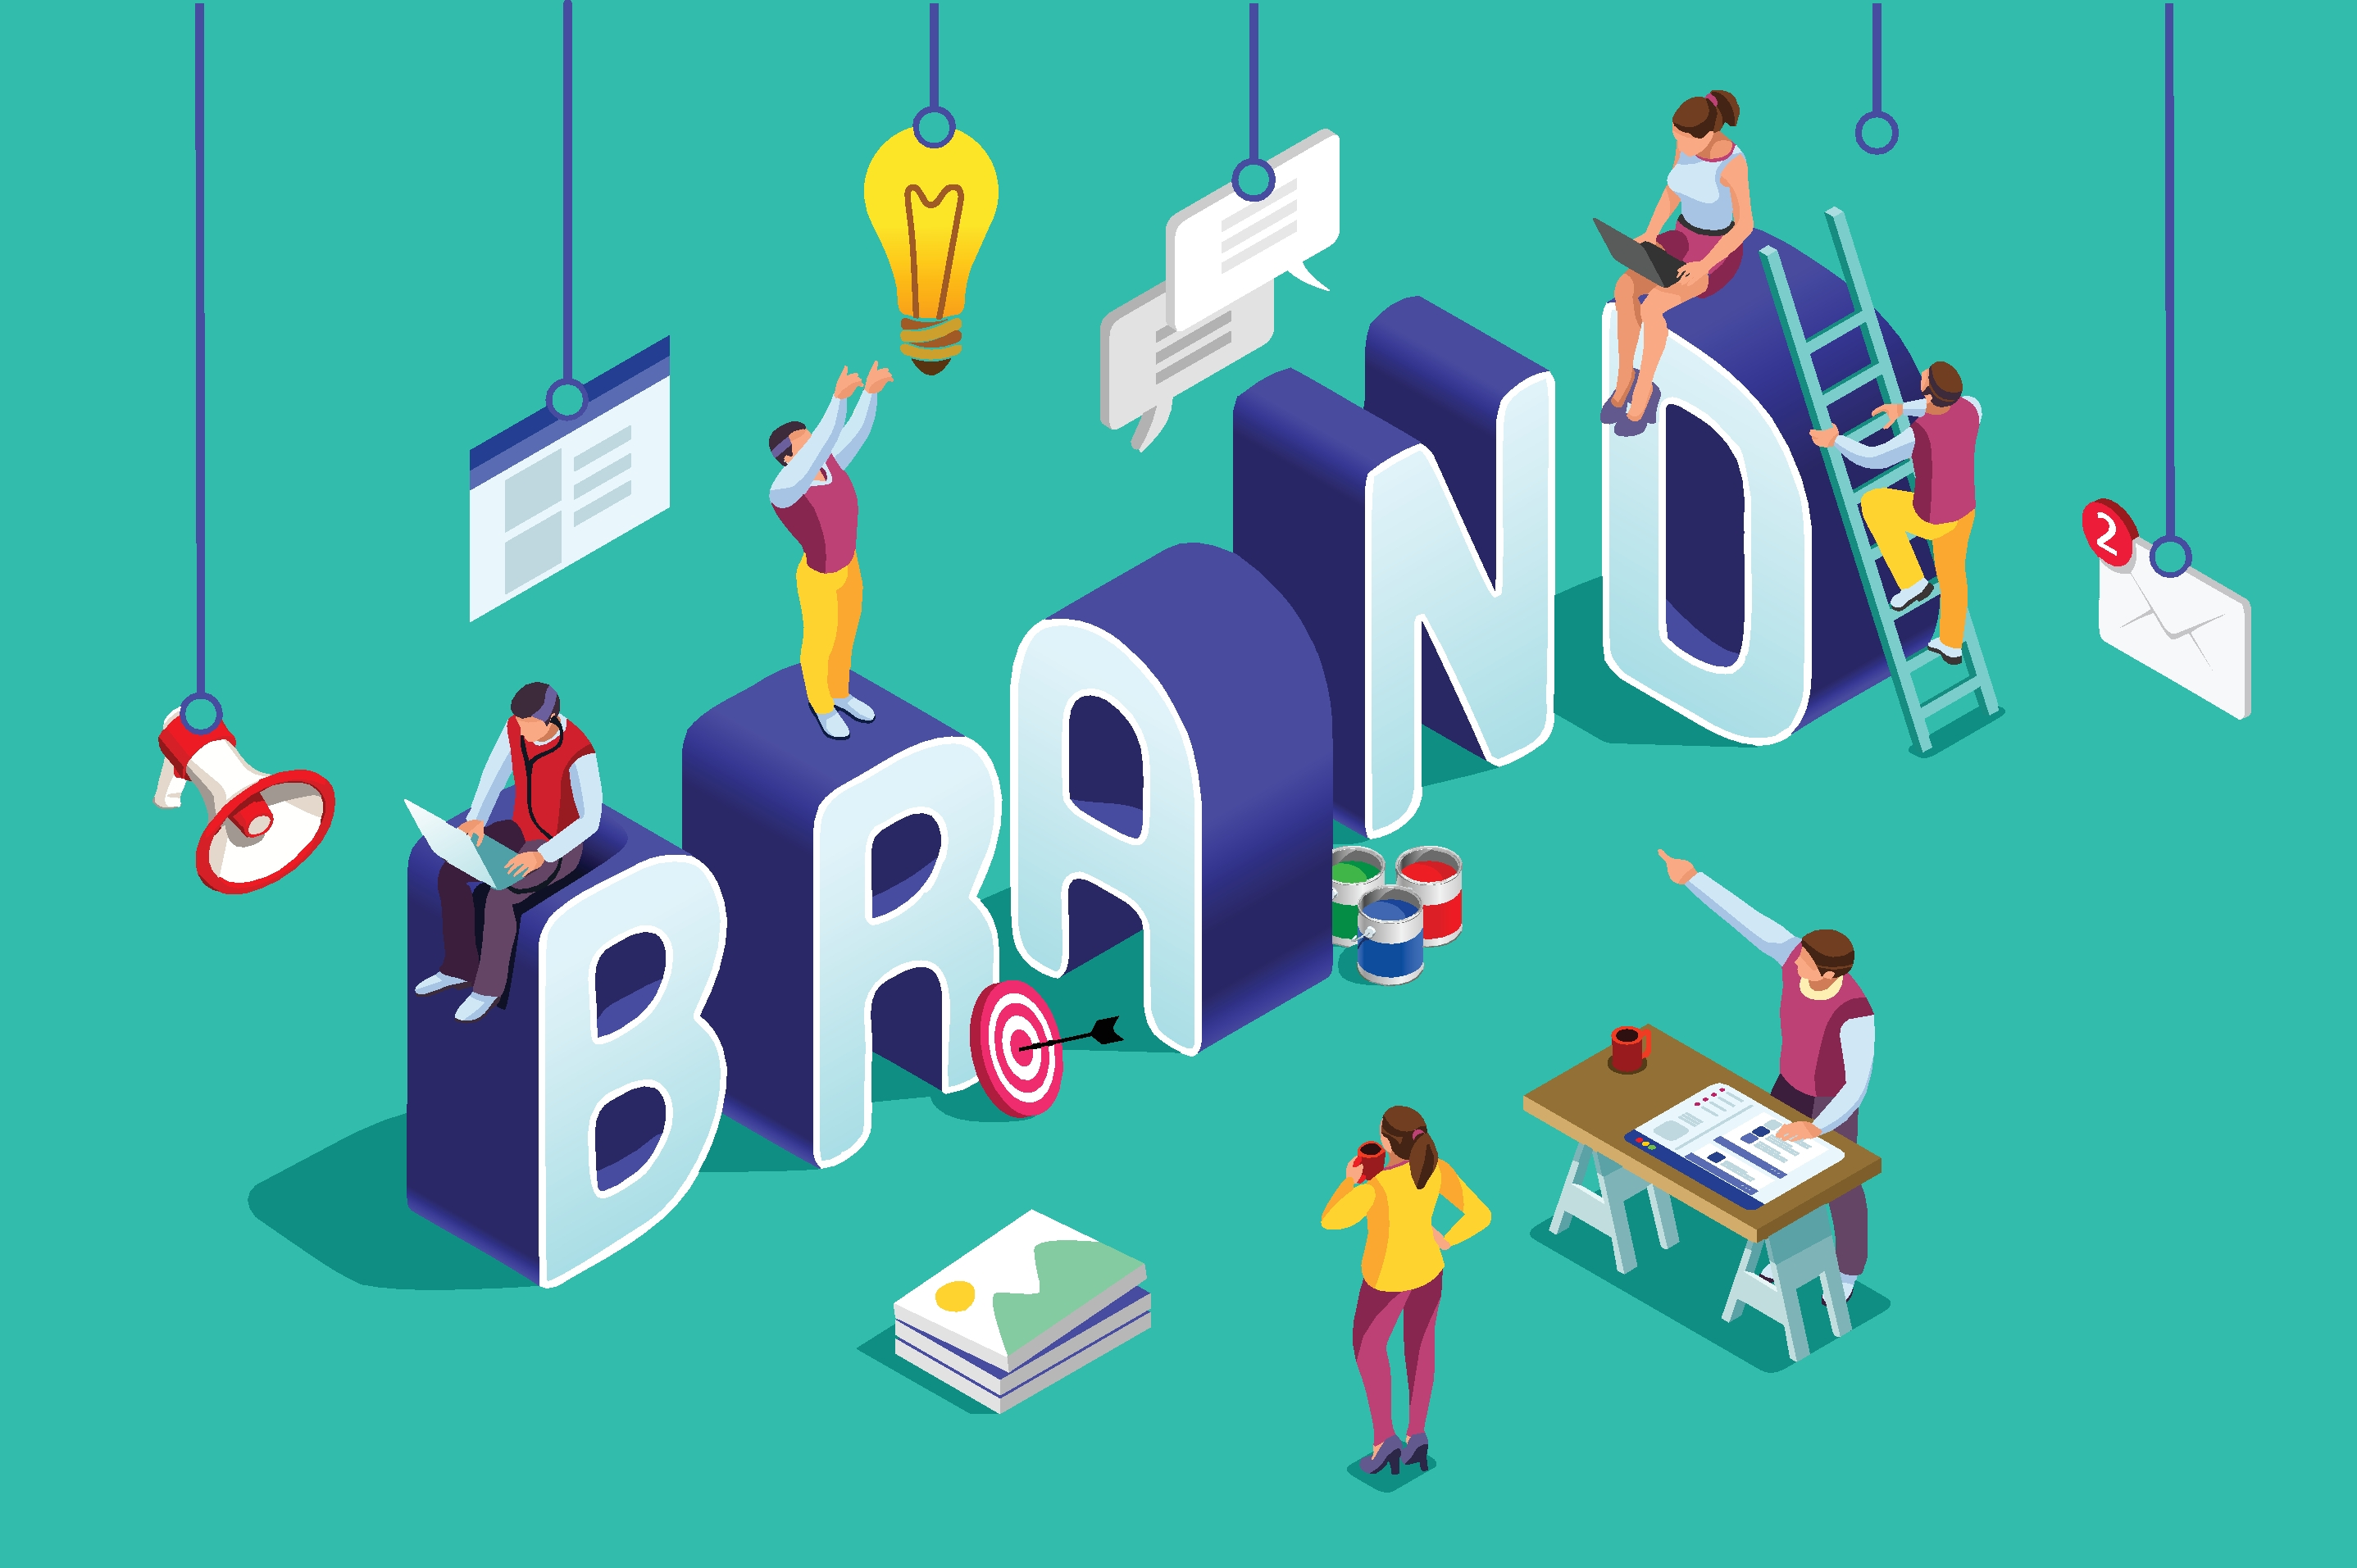 Understand the Key Elements of a Brand Strategy